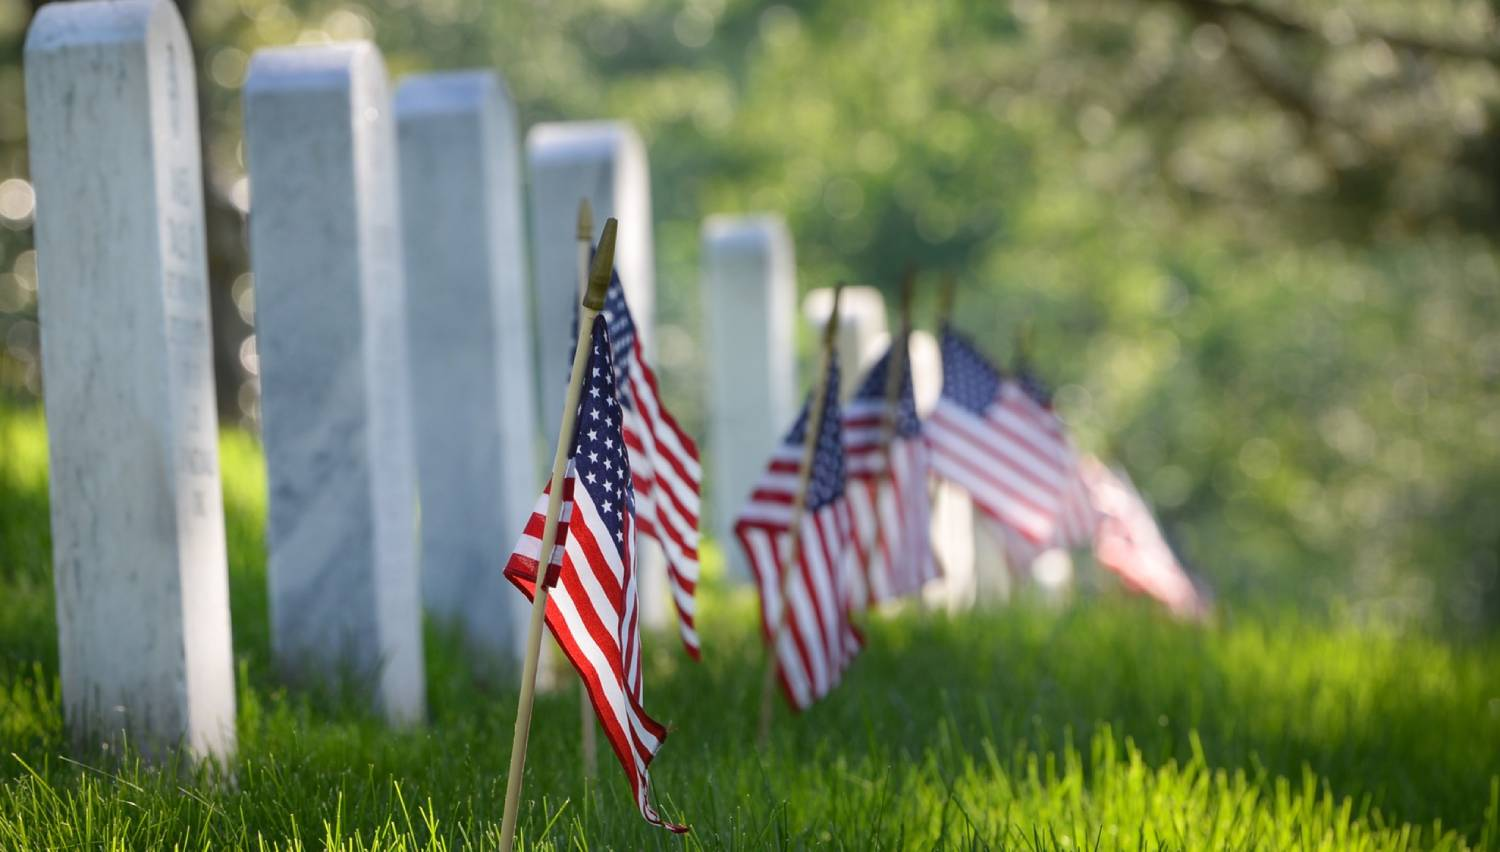 Arlington National Cemetery - Things To Do In Washington, D.C.